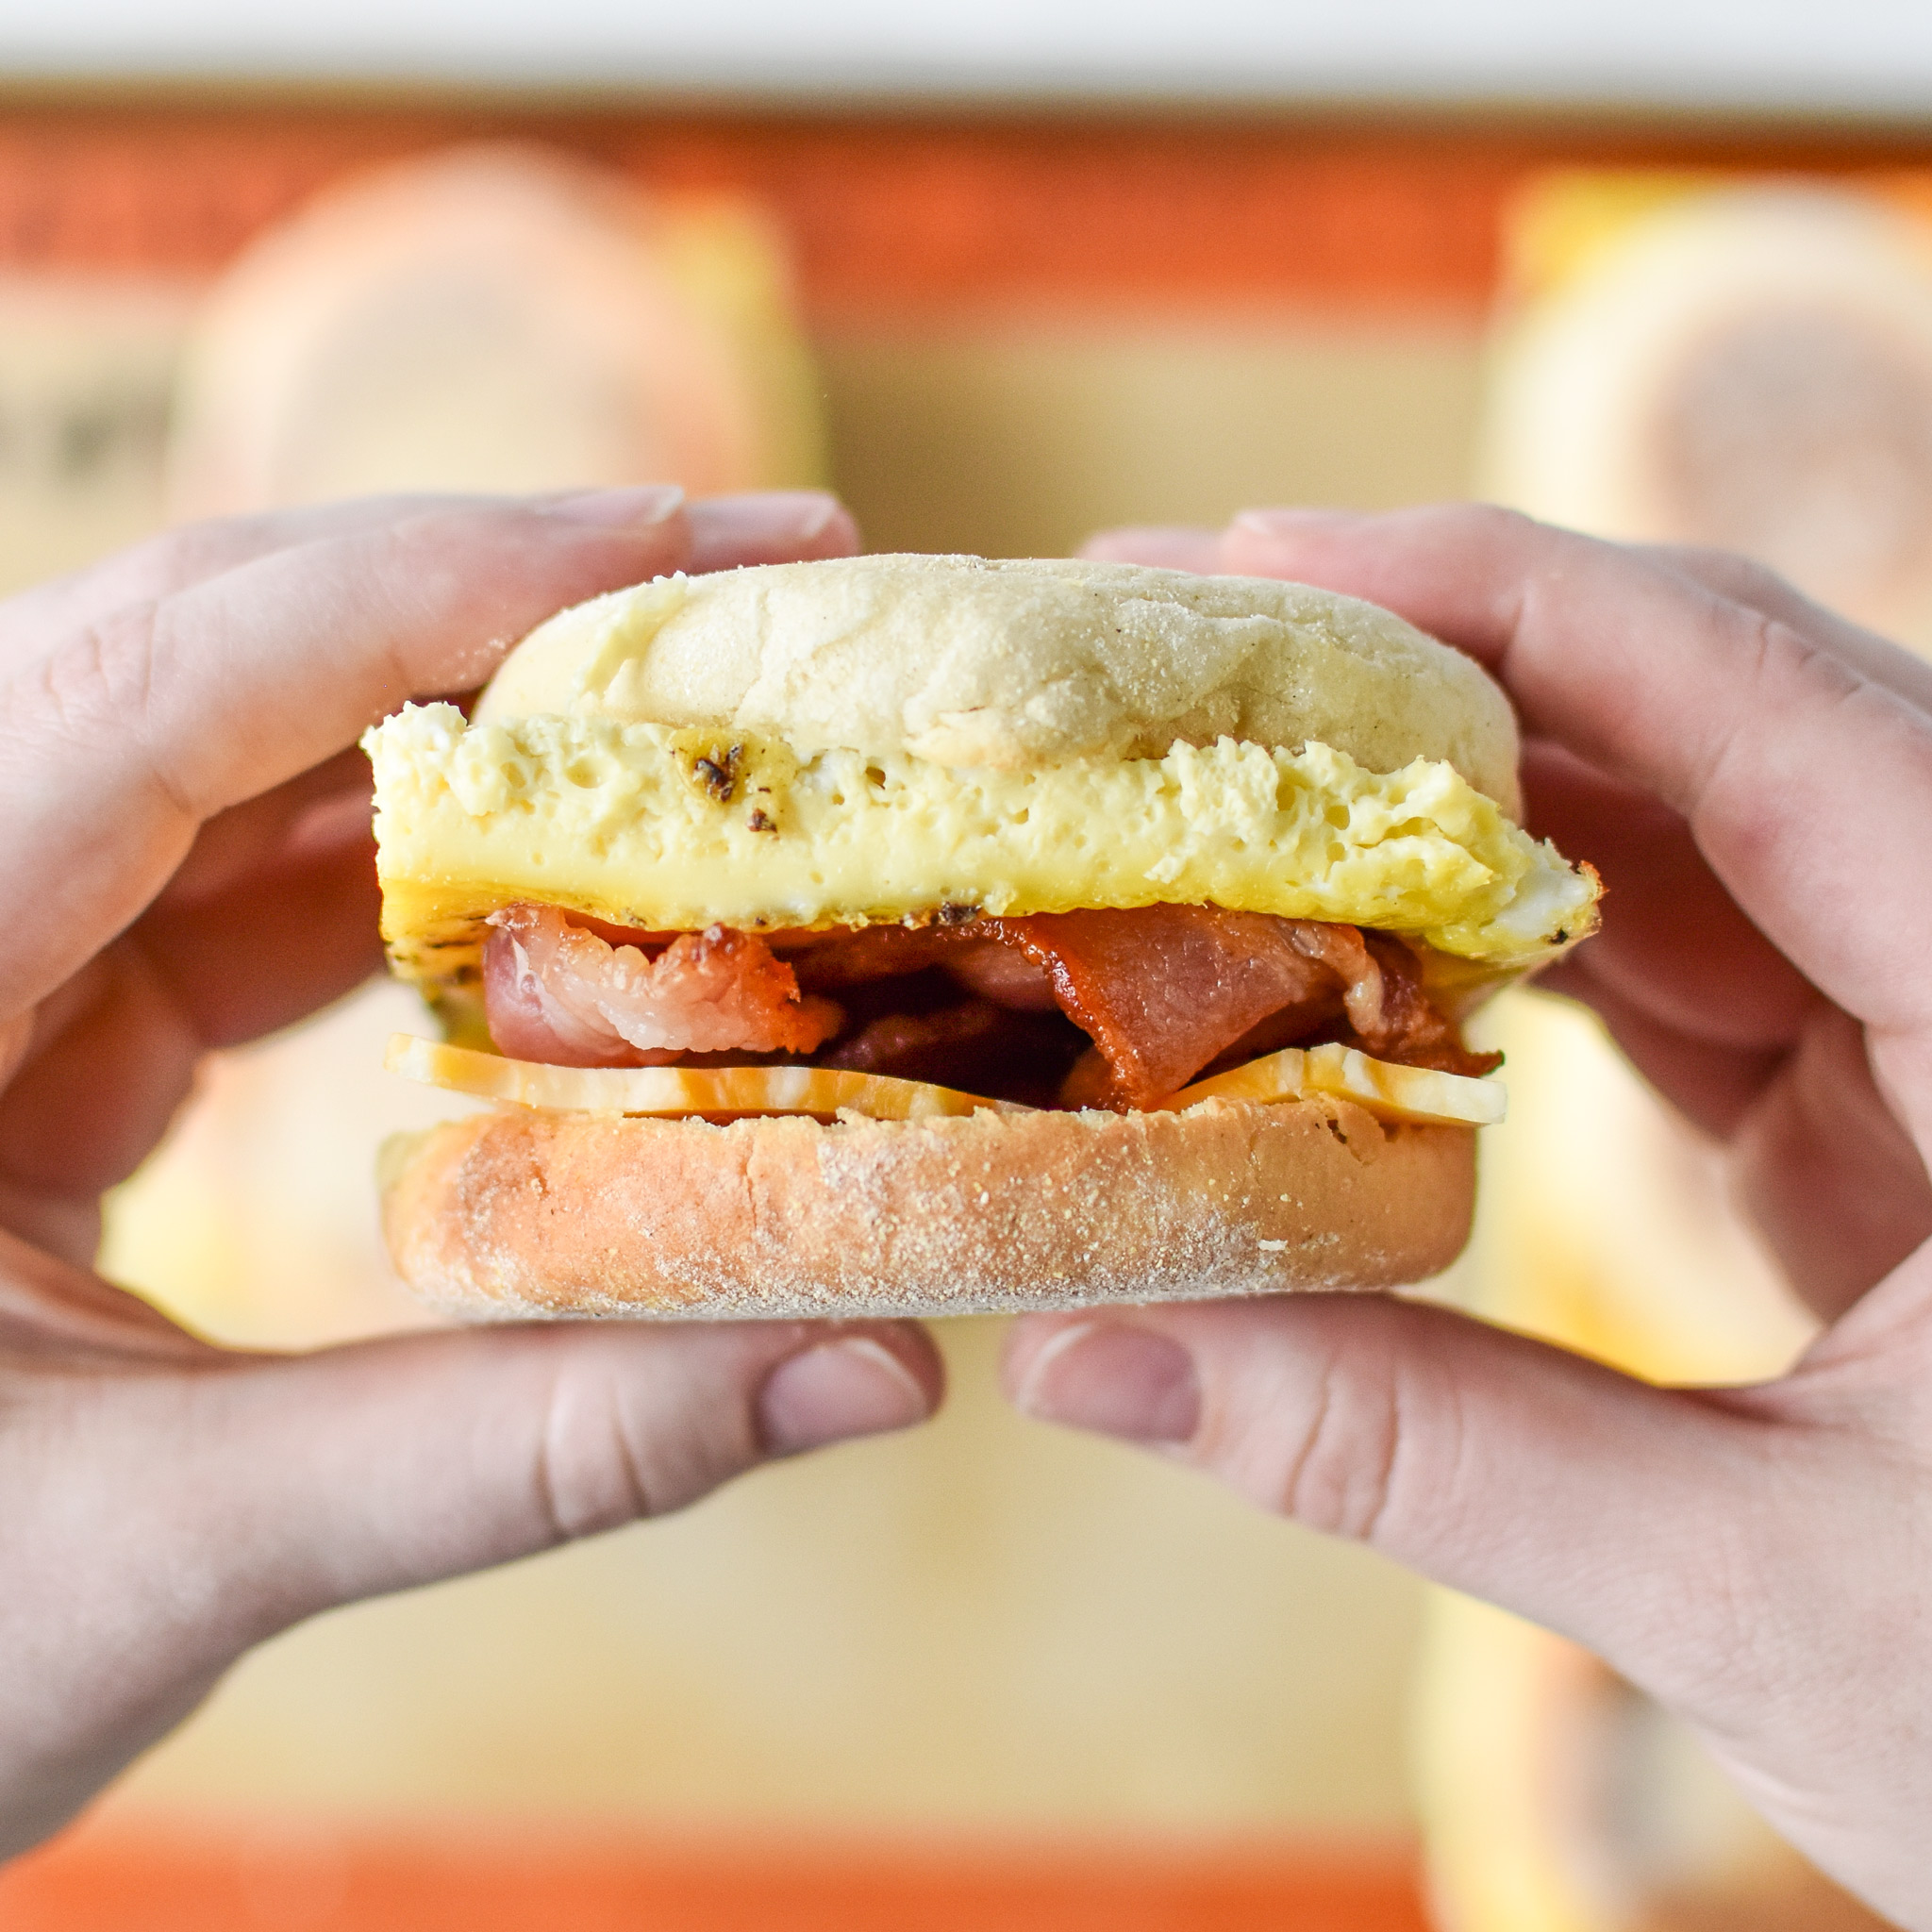 So ready to take a bite of this Make-Ahead Bacon Breakfast Sandwich!